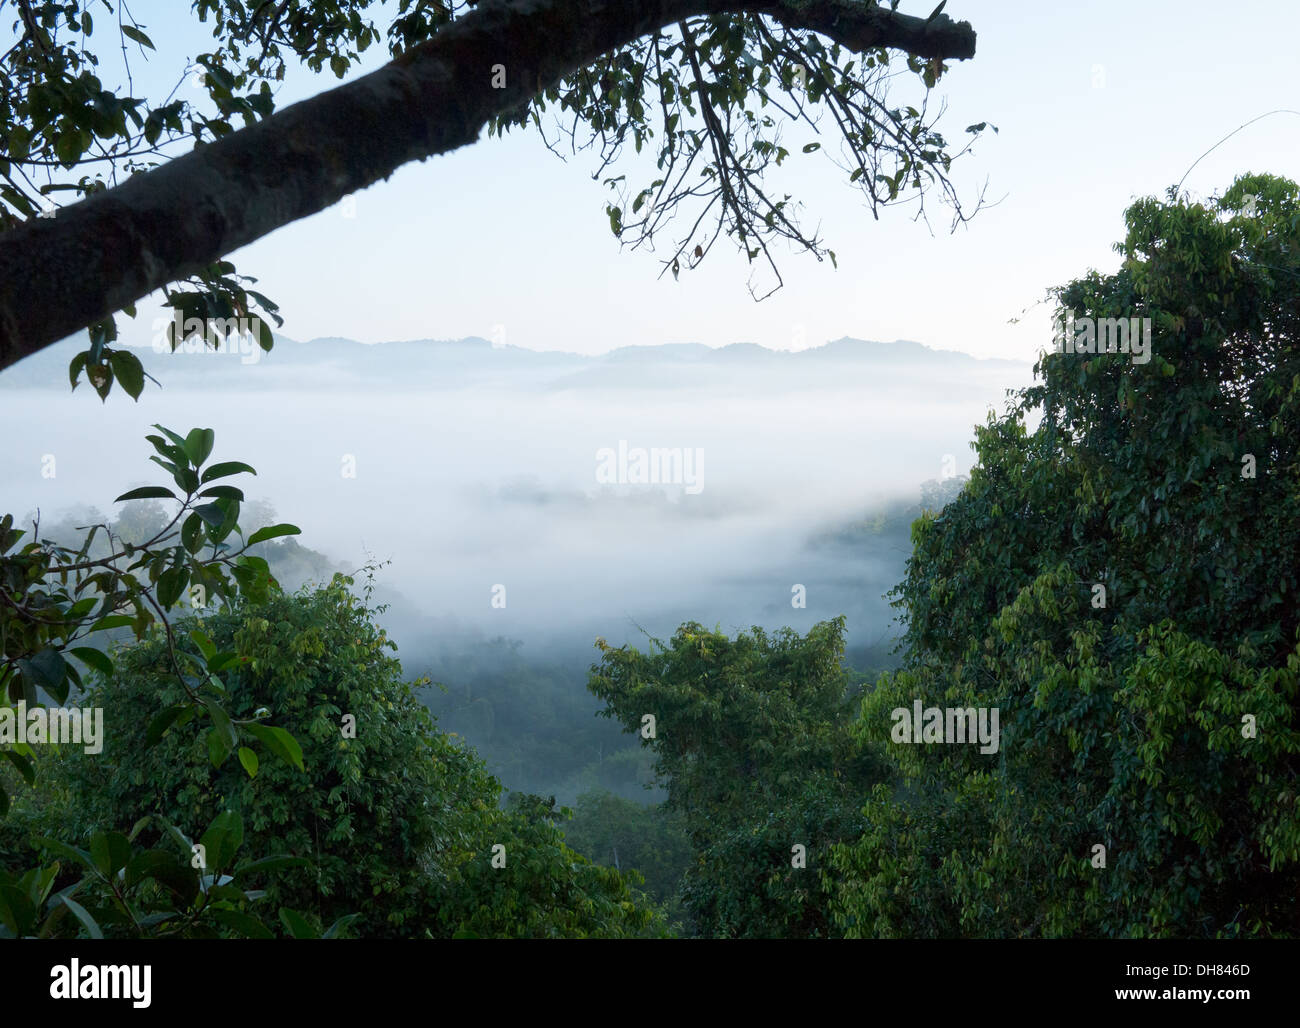 A view of the misty rainforest as seen from a treehouse at The Gibbon Experience in Bokeo Nature Reserve, near Huay Xai, Laos. - Stock Image